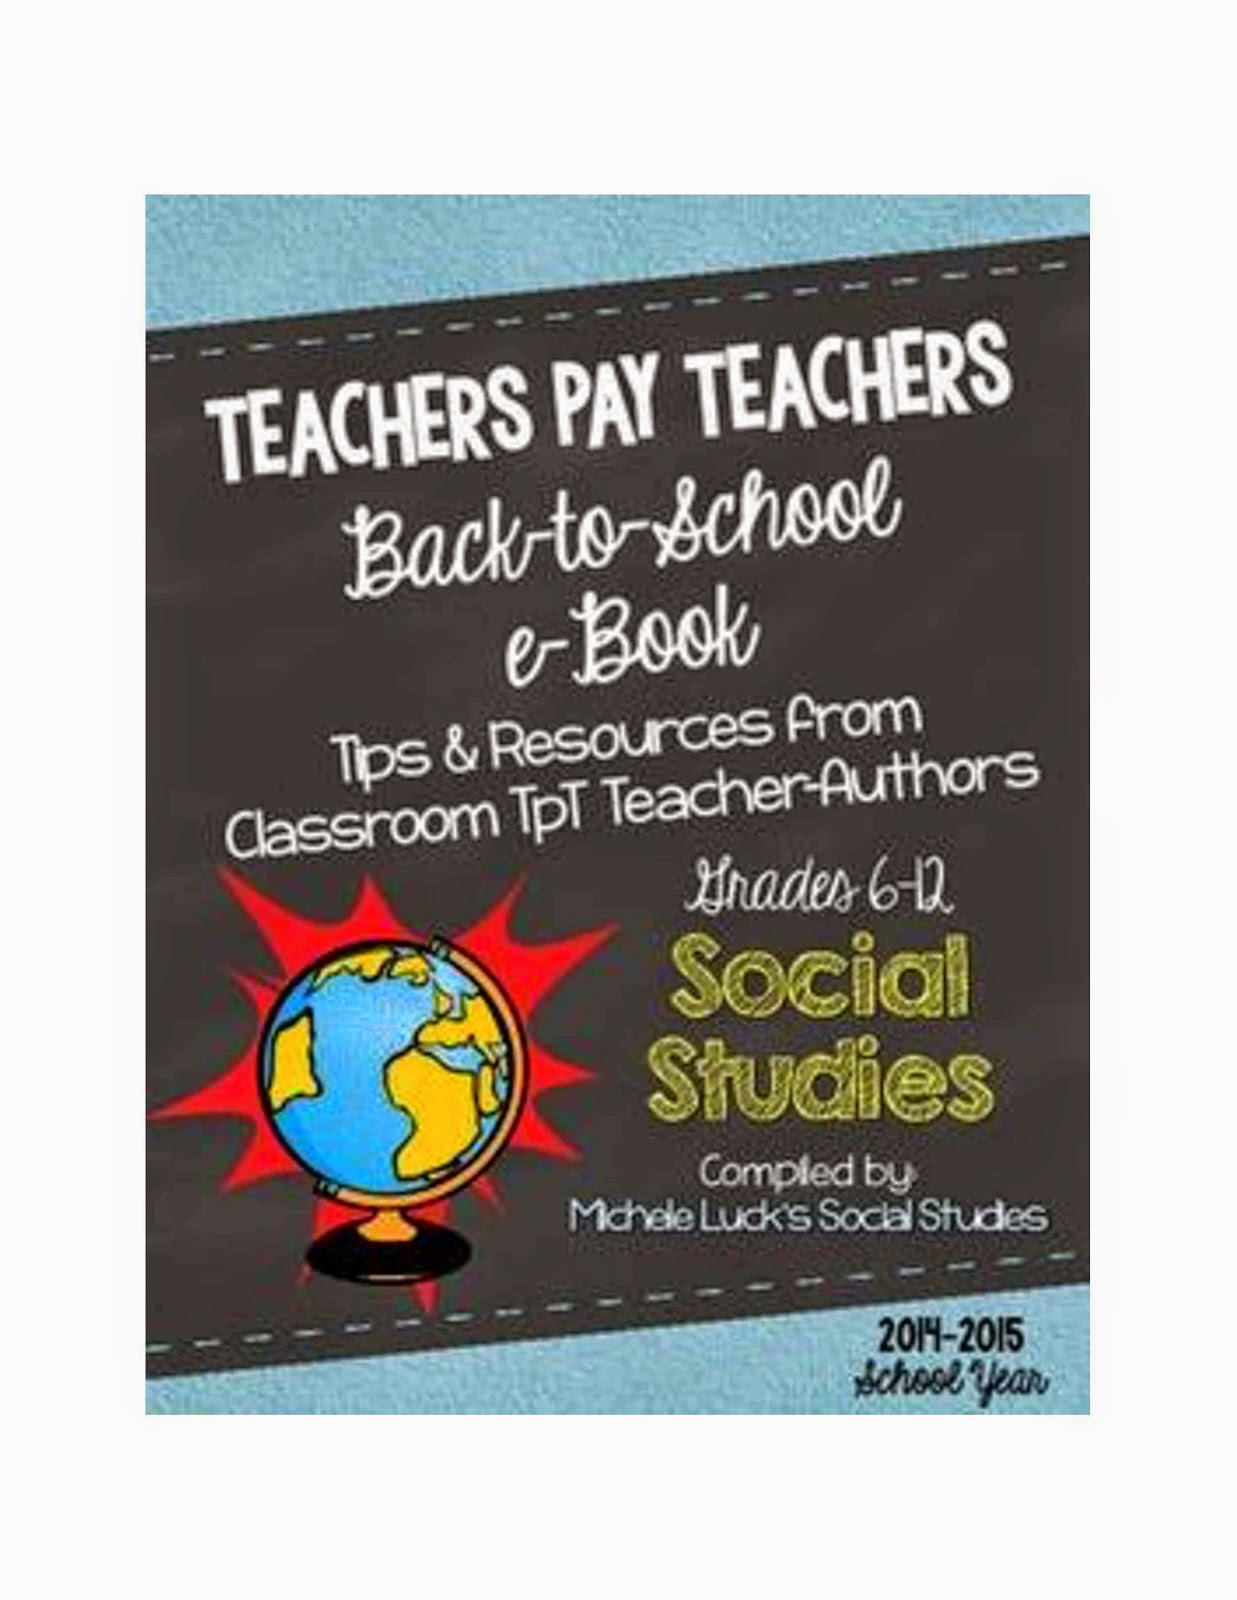 http://www.teacherspayteachers.com/Product/Social-Studies-Free-Back-to-School-eBook-for-Grades-6-12-1374458